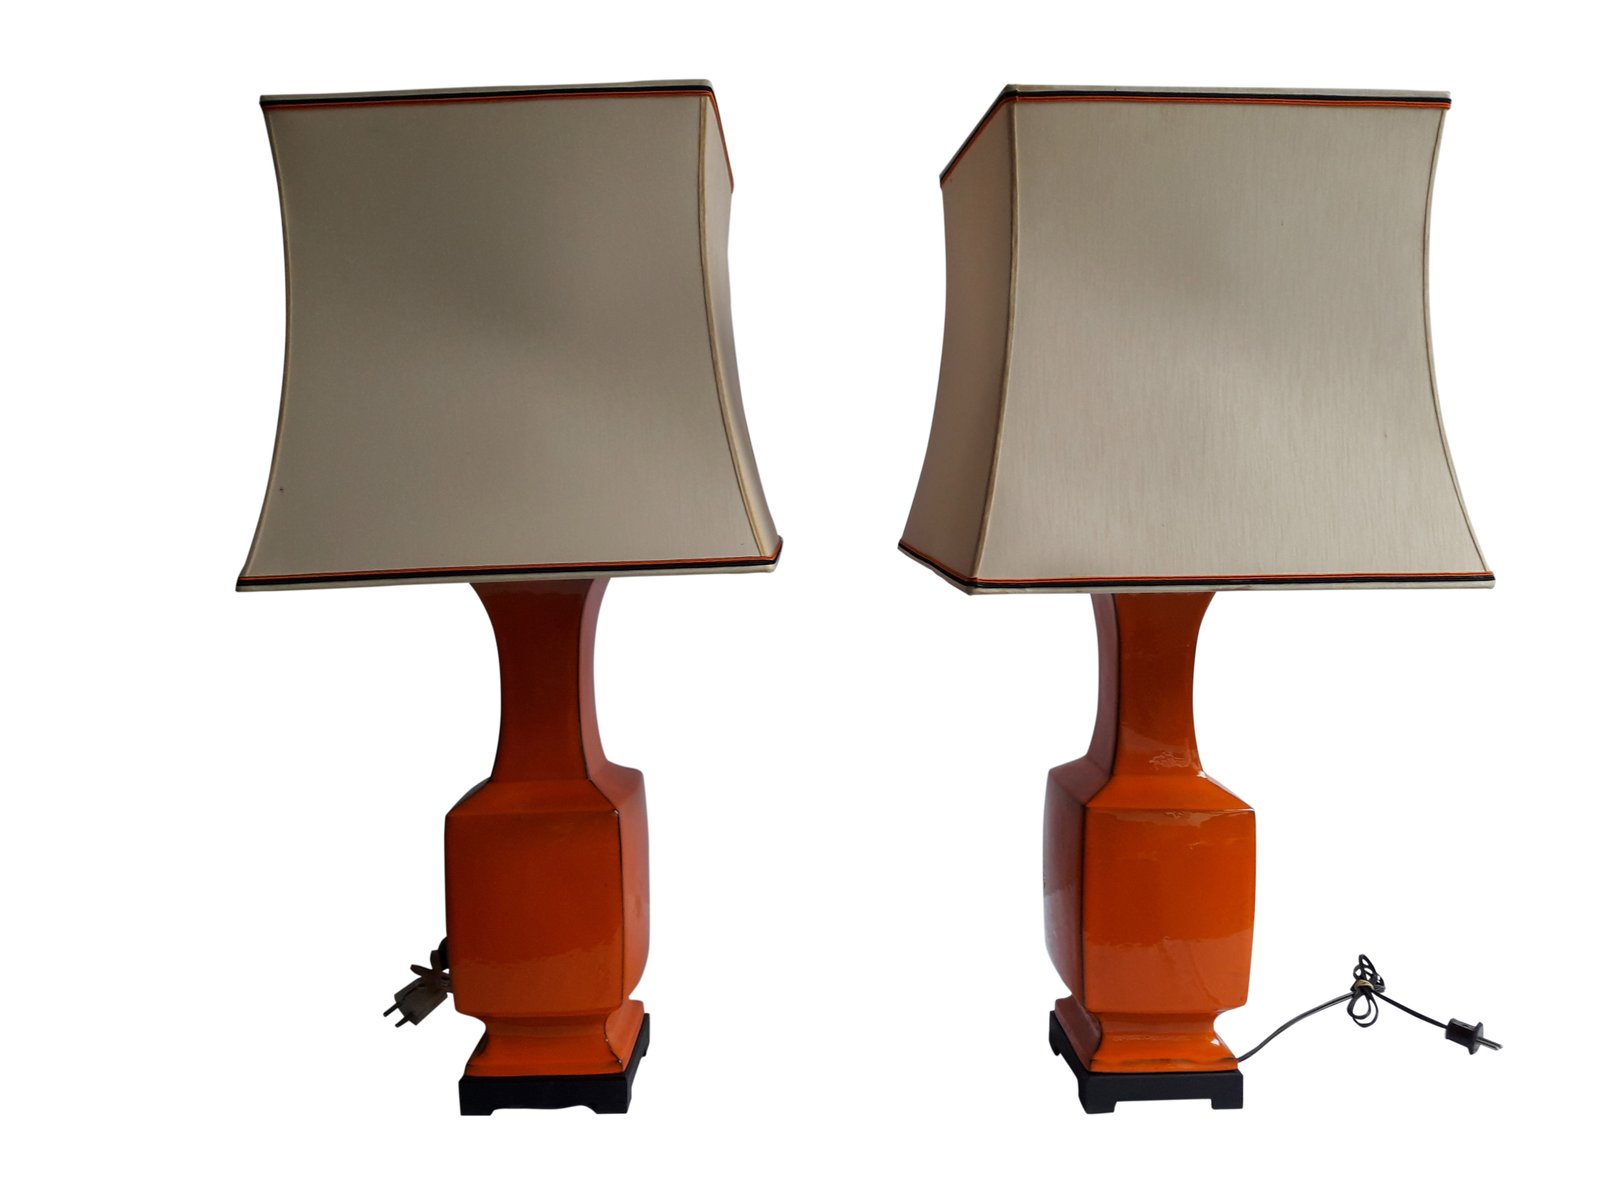 Vintage Orange Porcelain Table Lamps Set Of 2 For Sale At